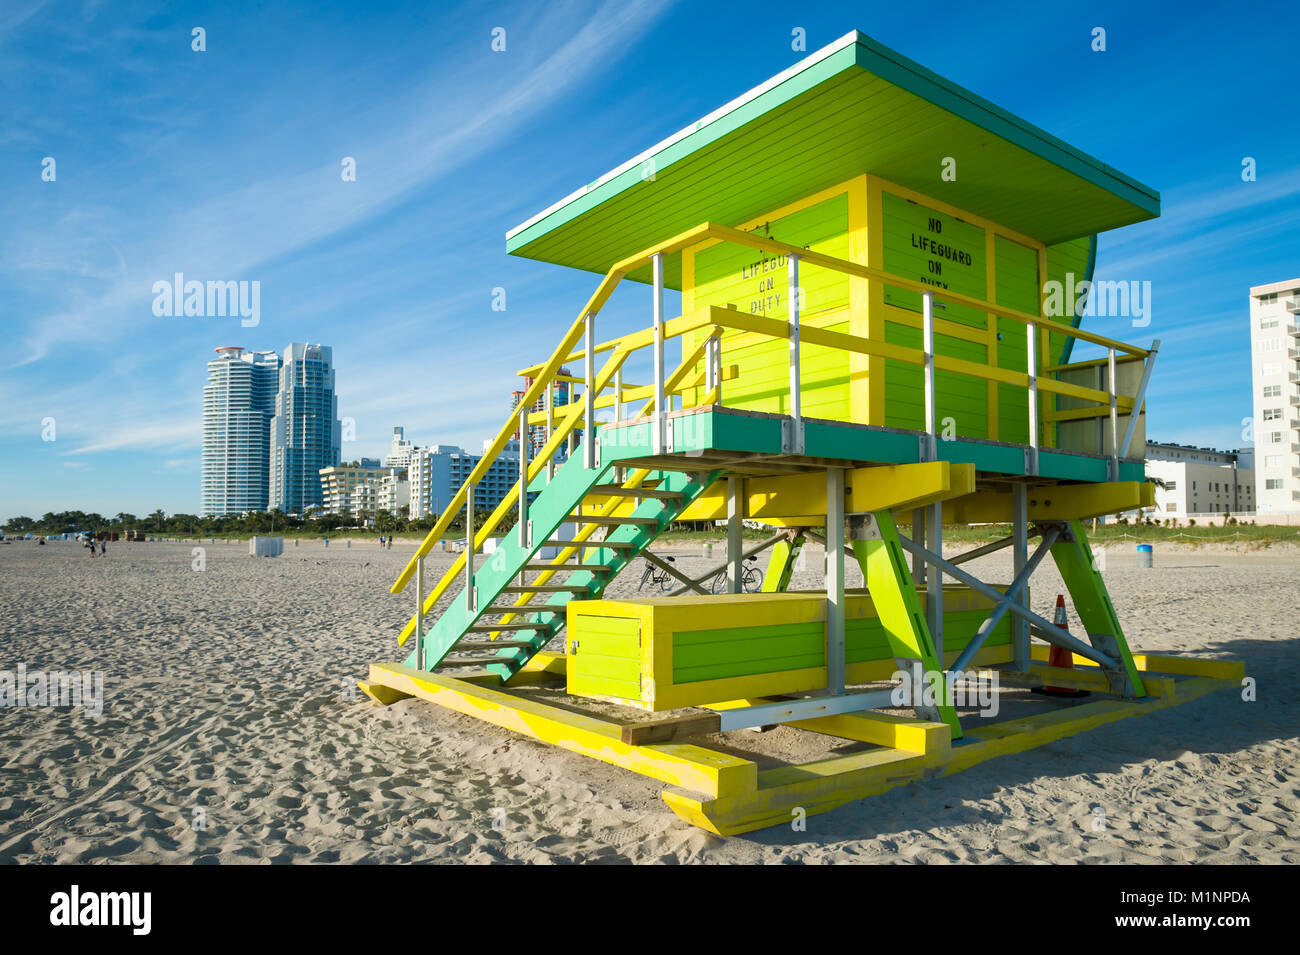 Scenic morning view of an iconic colorful lifeguard tower on South Beach, Miami - Stock Image